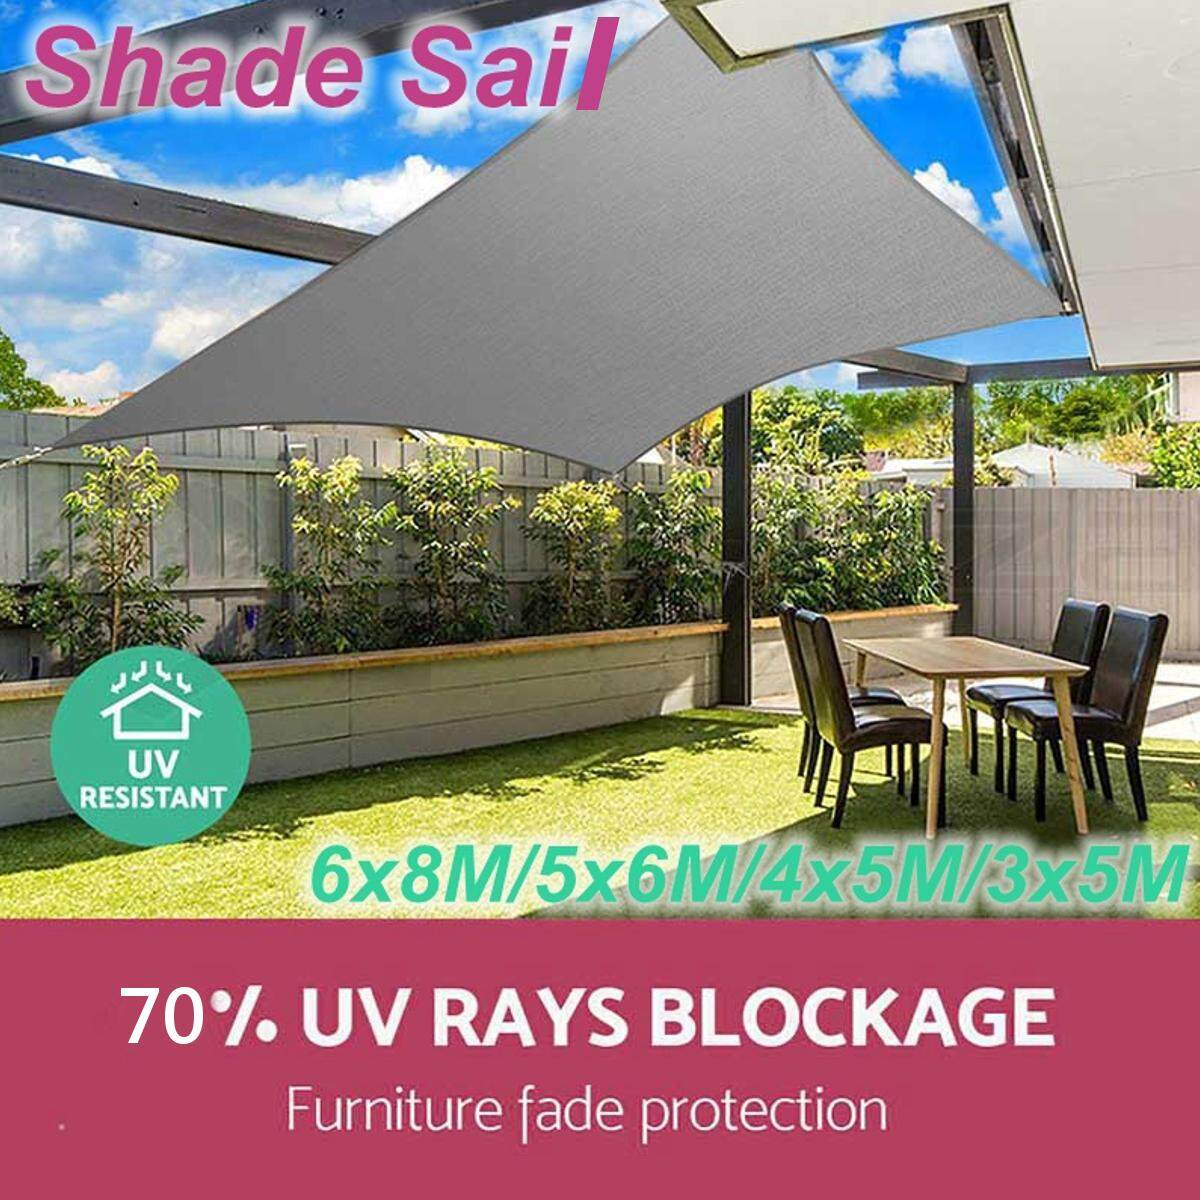 Home Shades Awnings Buy At Best Price In Real Screen Toddler 2 Orange 45m Sun Shade Sail Cloth Shadecloth Outdoor Canopy Awning Rectangle Square 280gsm Waterproof Anti